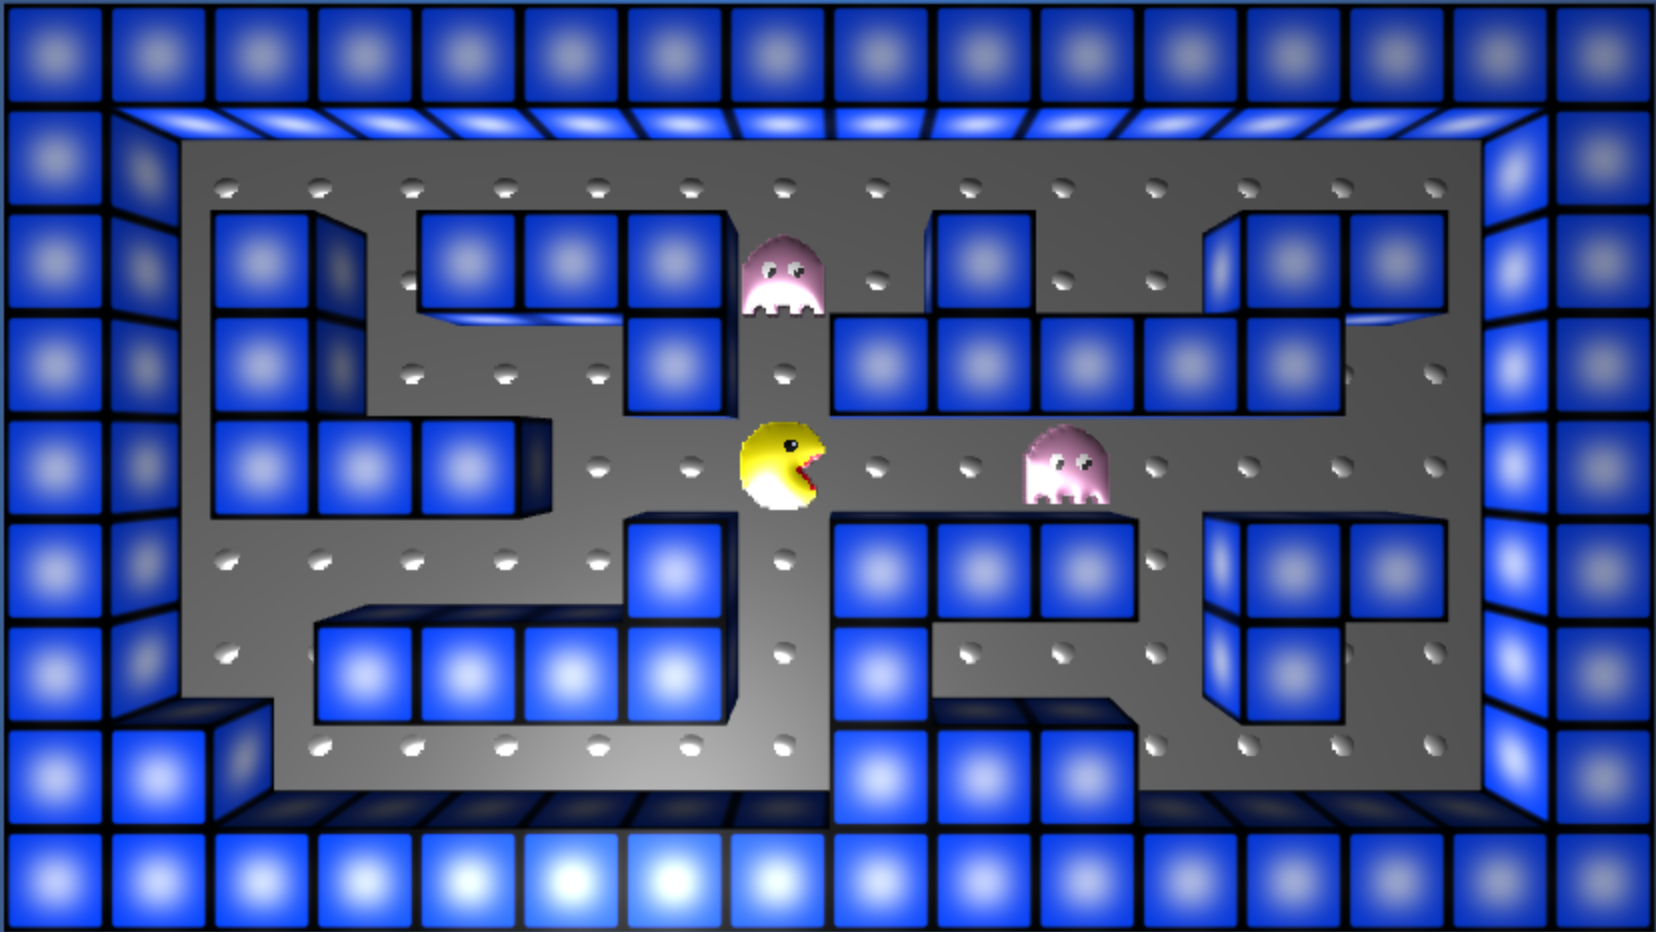 A Pacman game created with AgentCubes.